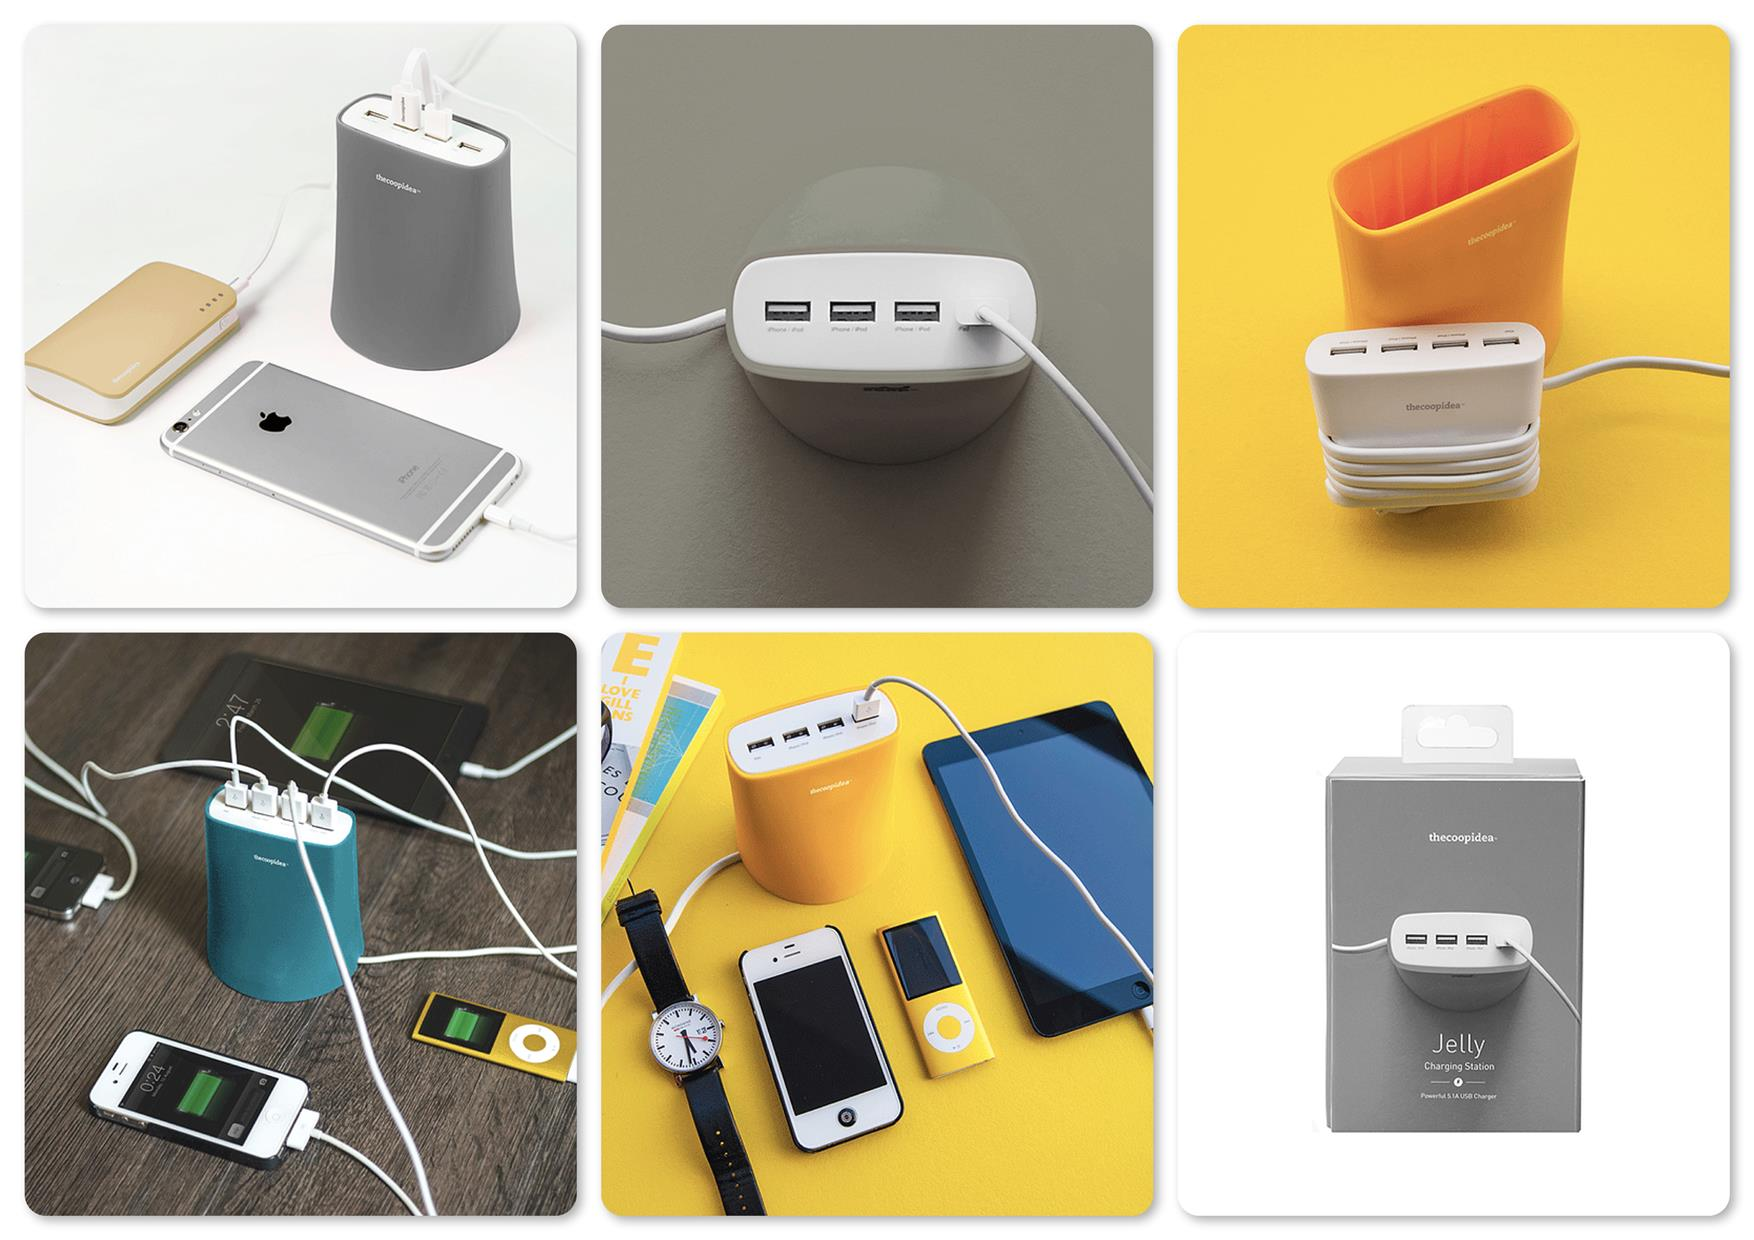 Bdotcom = TheCoopIdea Jelly 5.1A 4 Port USB Charging Station (Grey)